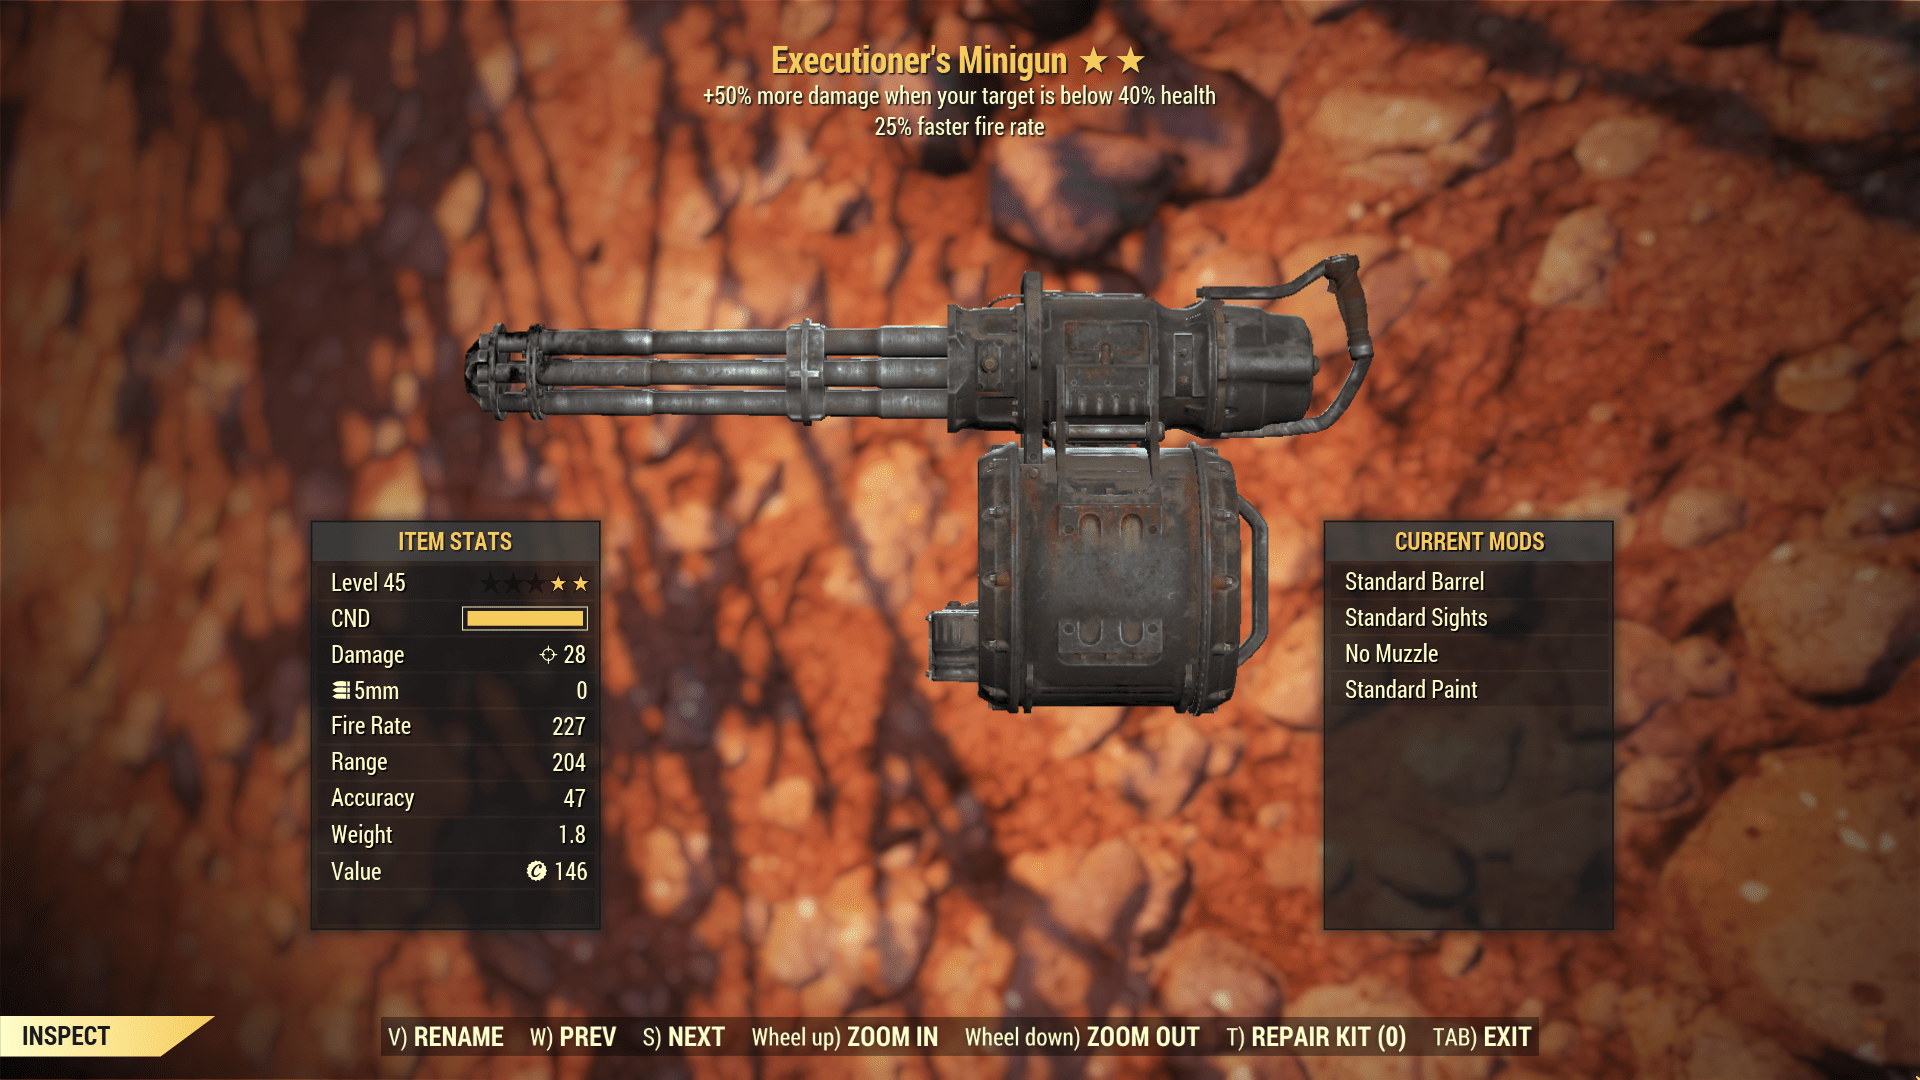 ★★ Executioners FFR Minigun | 25% Faster Fire Rate | MAX LVL | FAST DELIVERY |